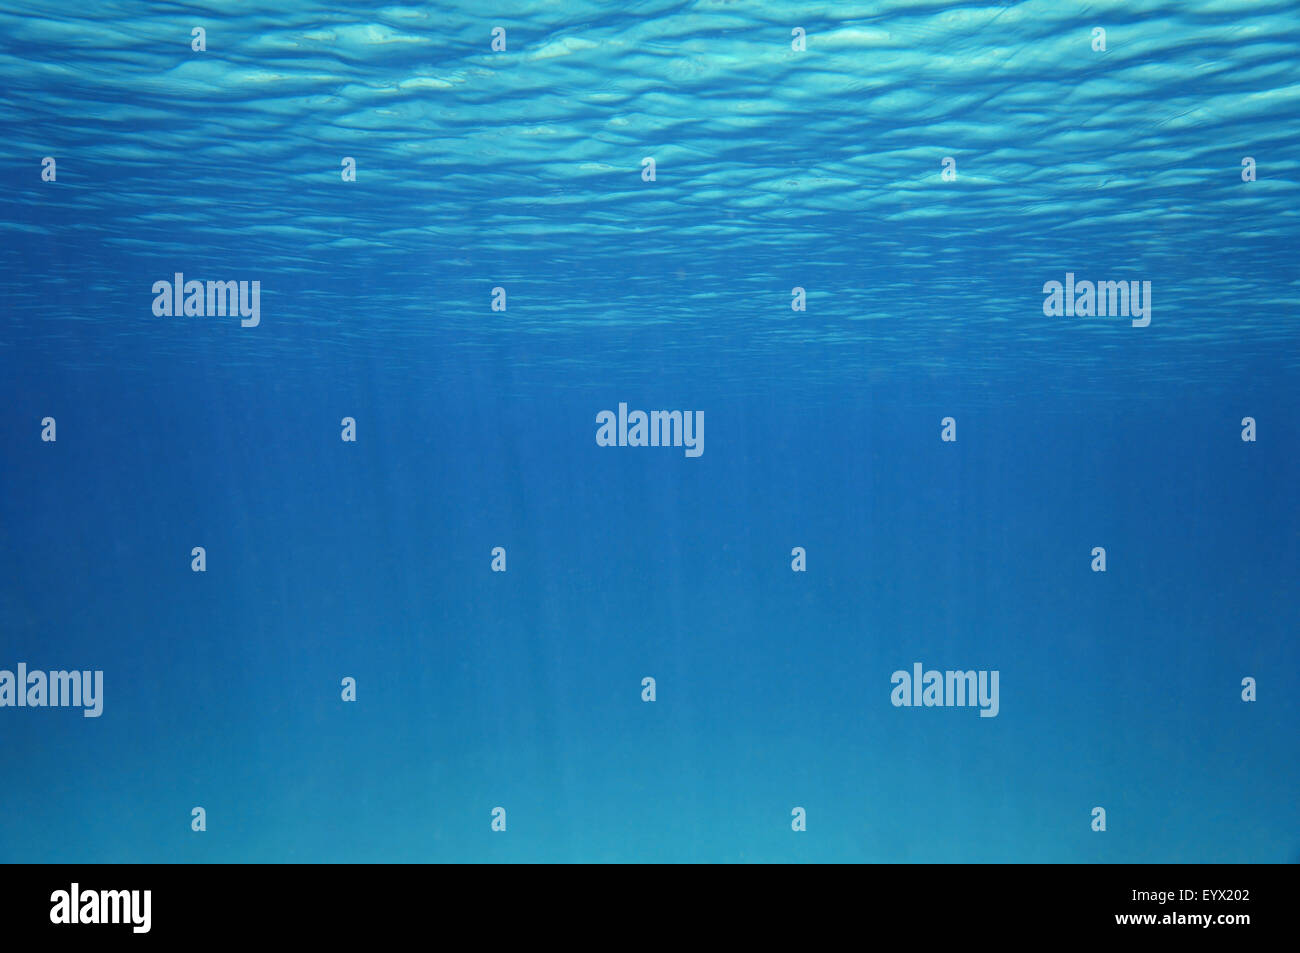 Blue underwater surface and ripples, natural scene in the Caribbean sea - Stock Image